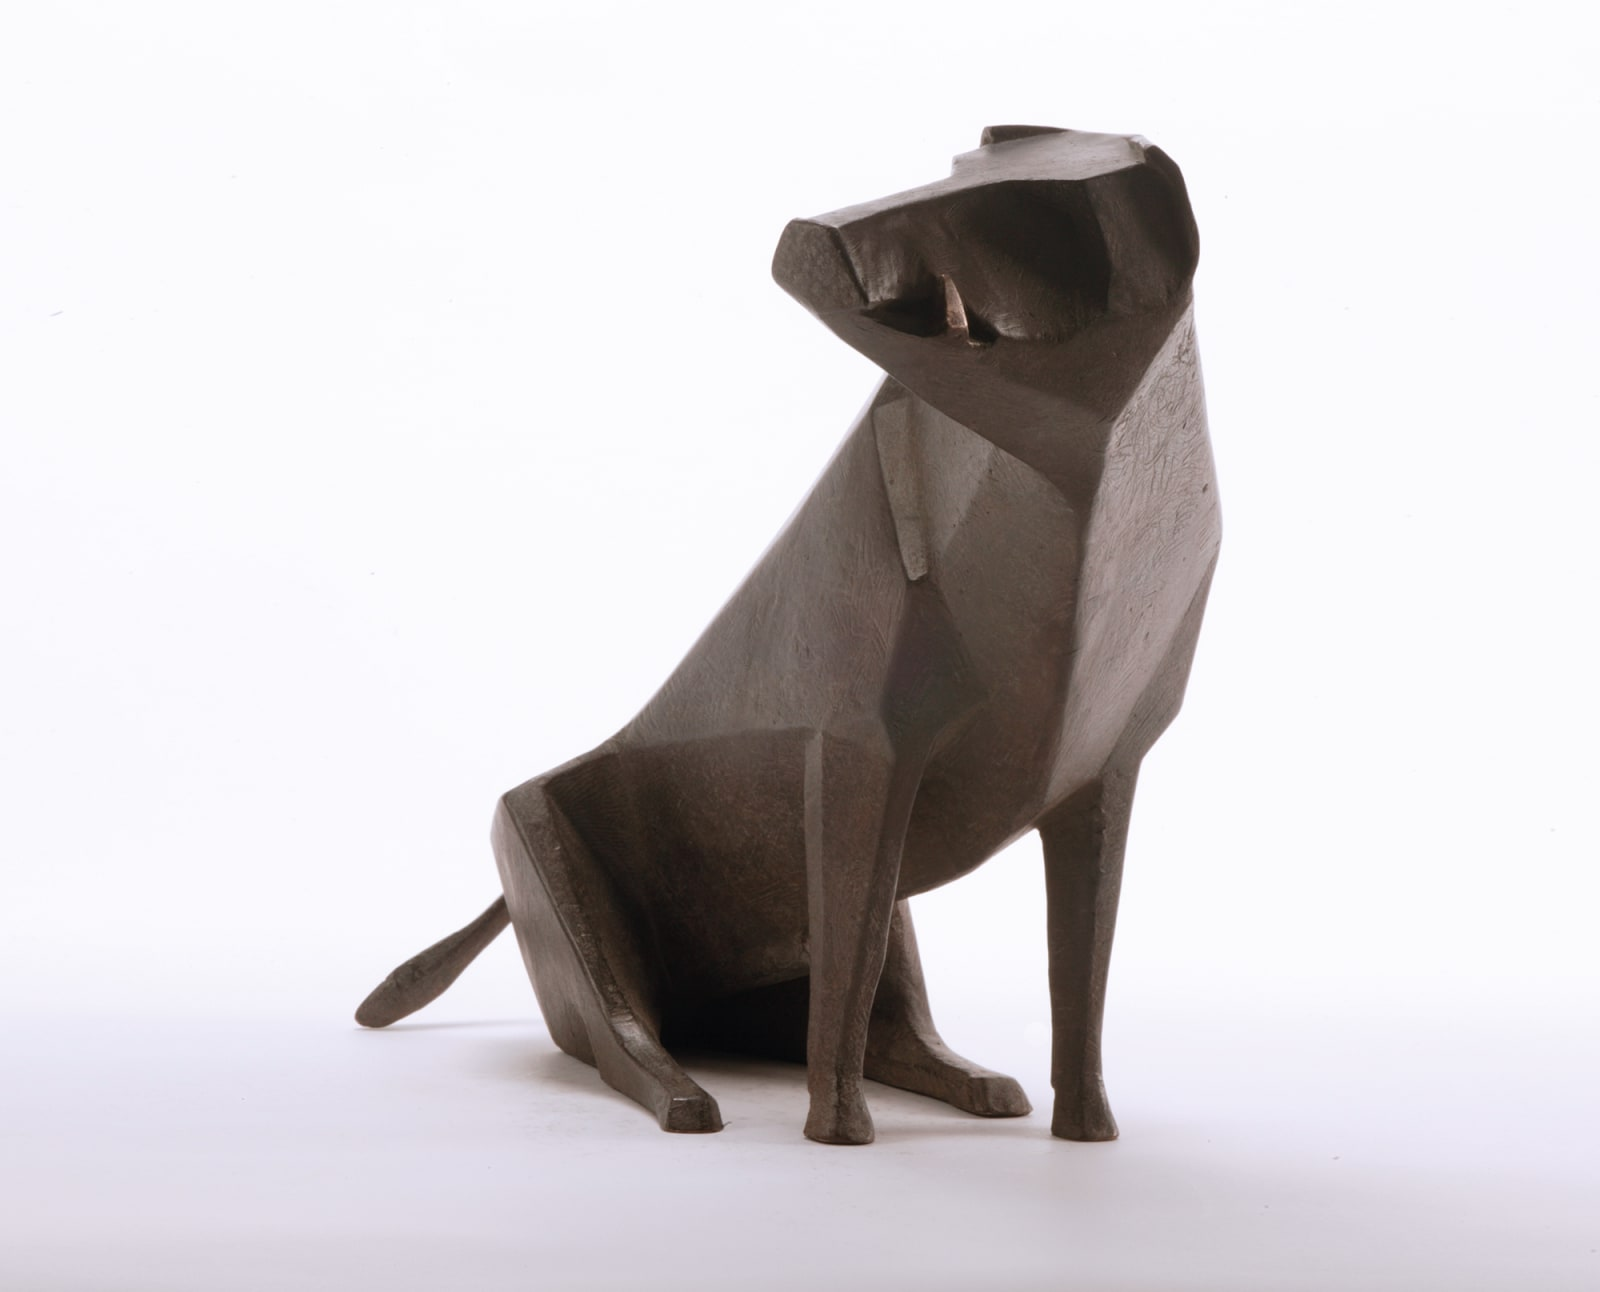 Terence Coventry, Sitting Boar Maquette, 2004